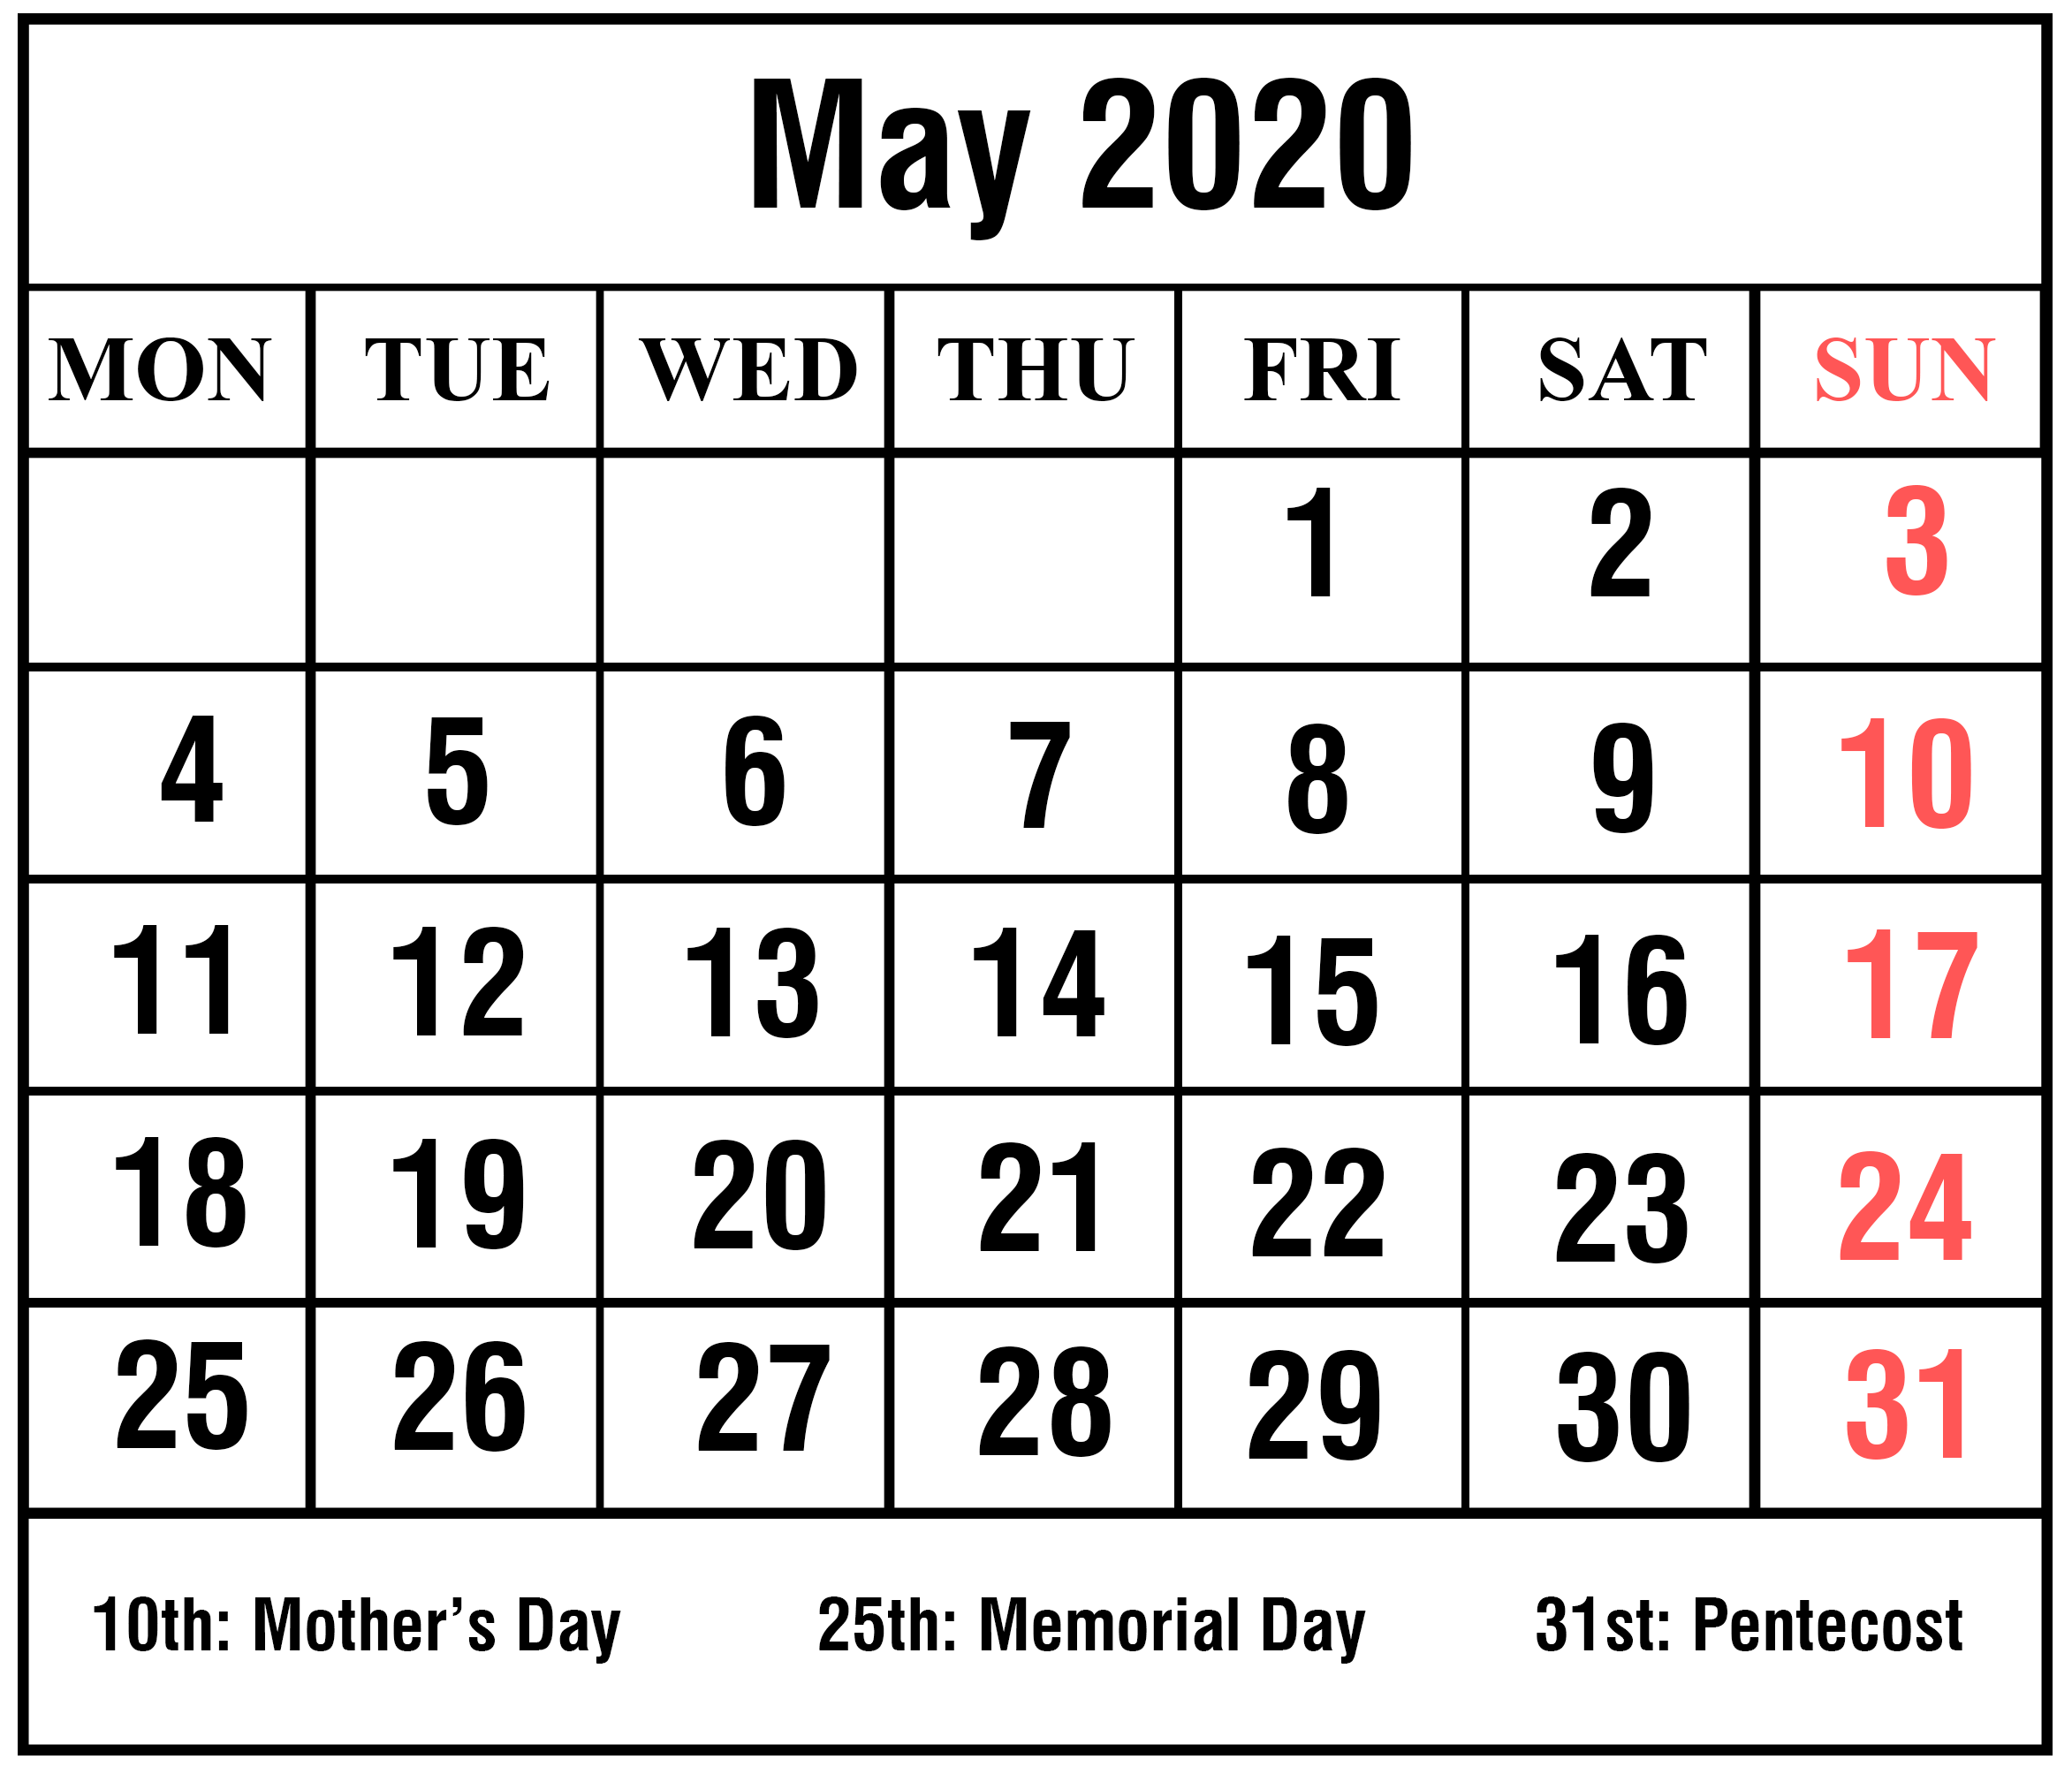 Holidays Calendar May 2020 Printable